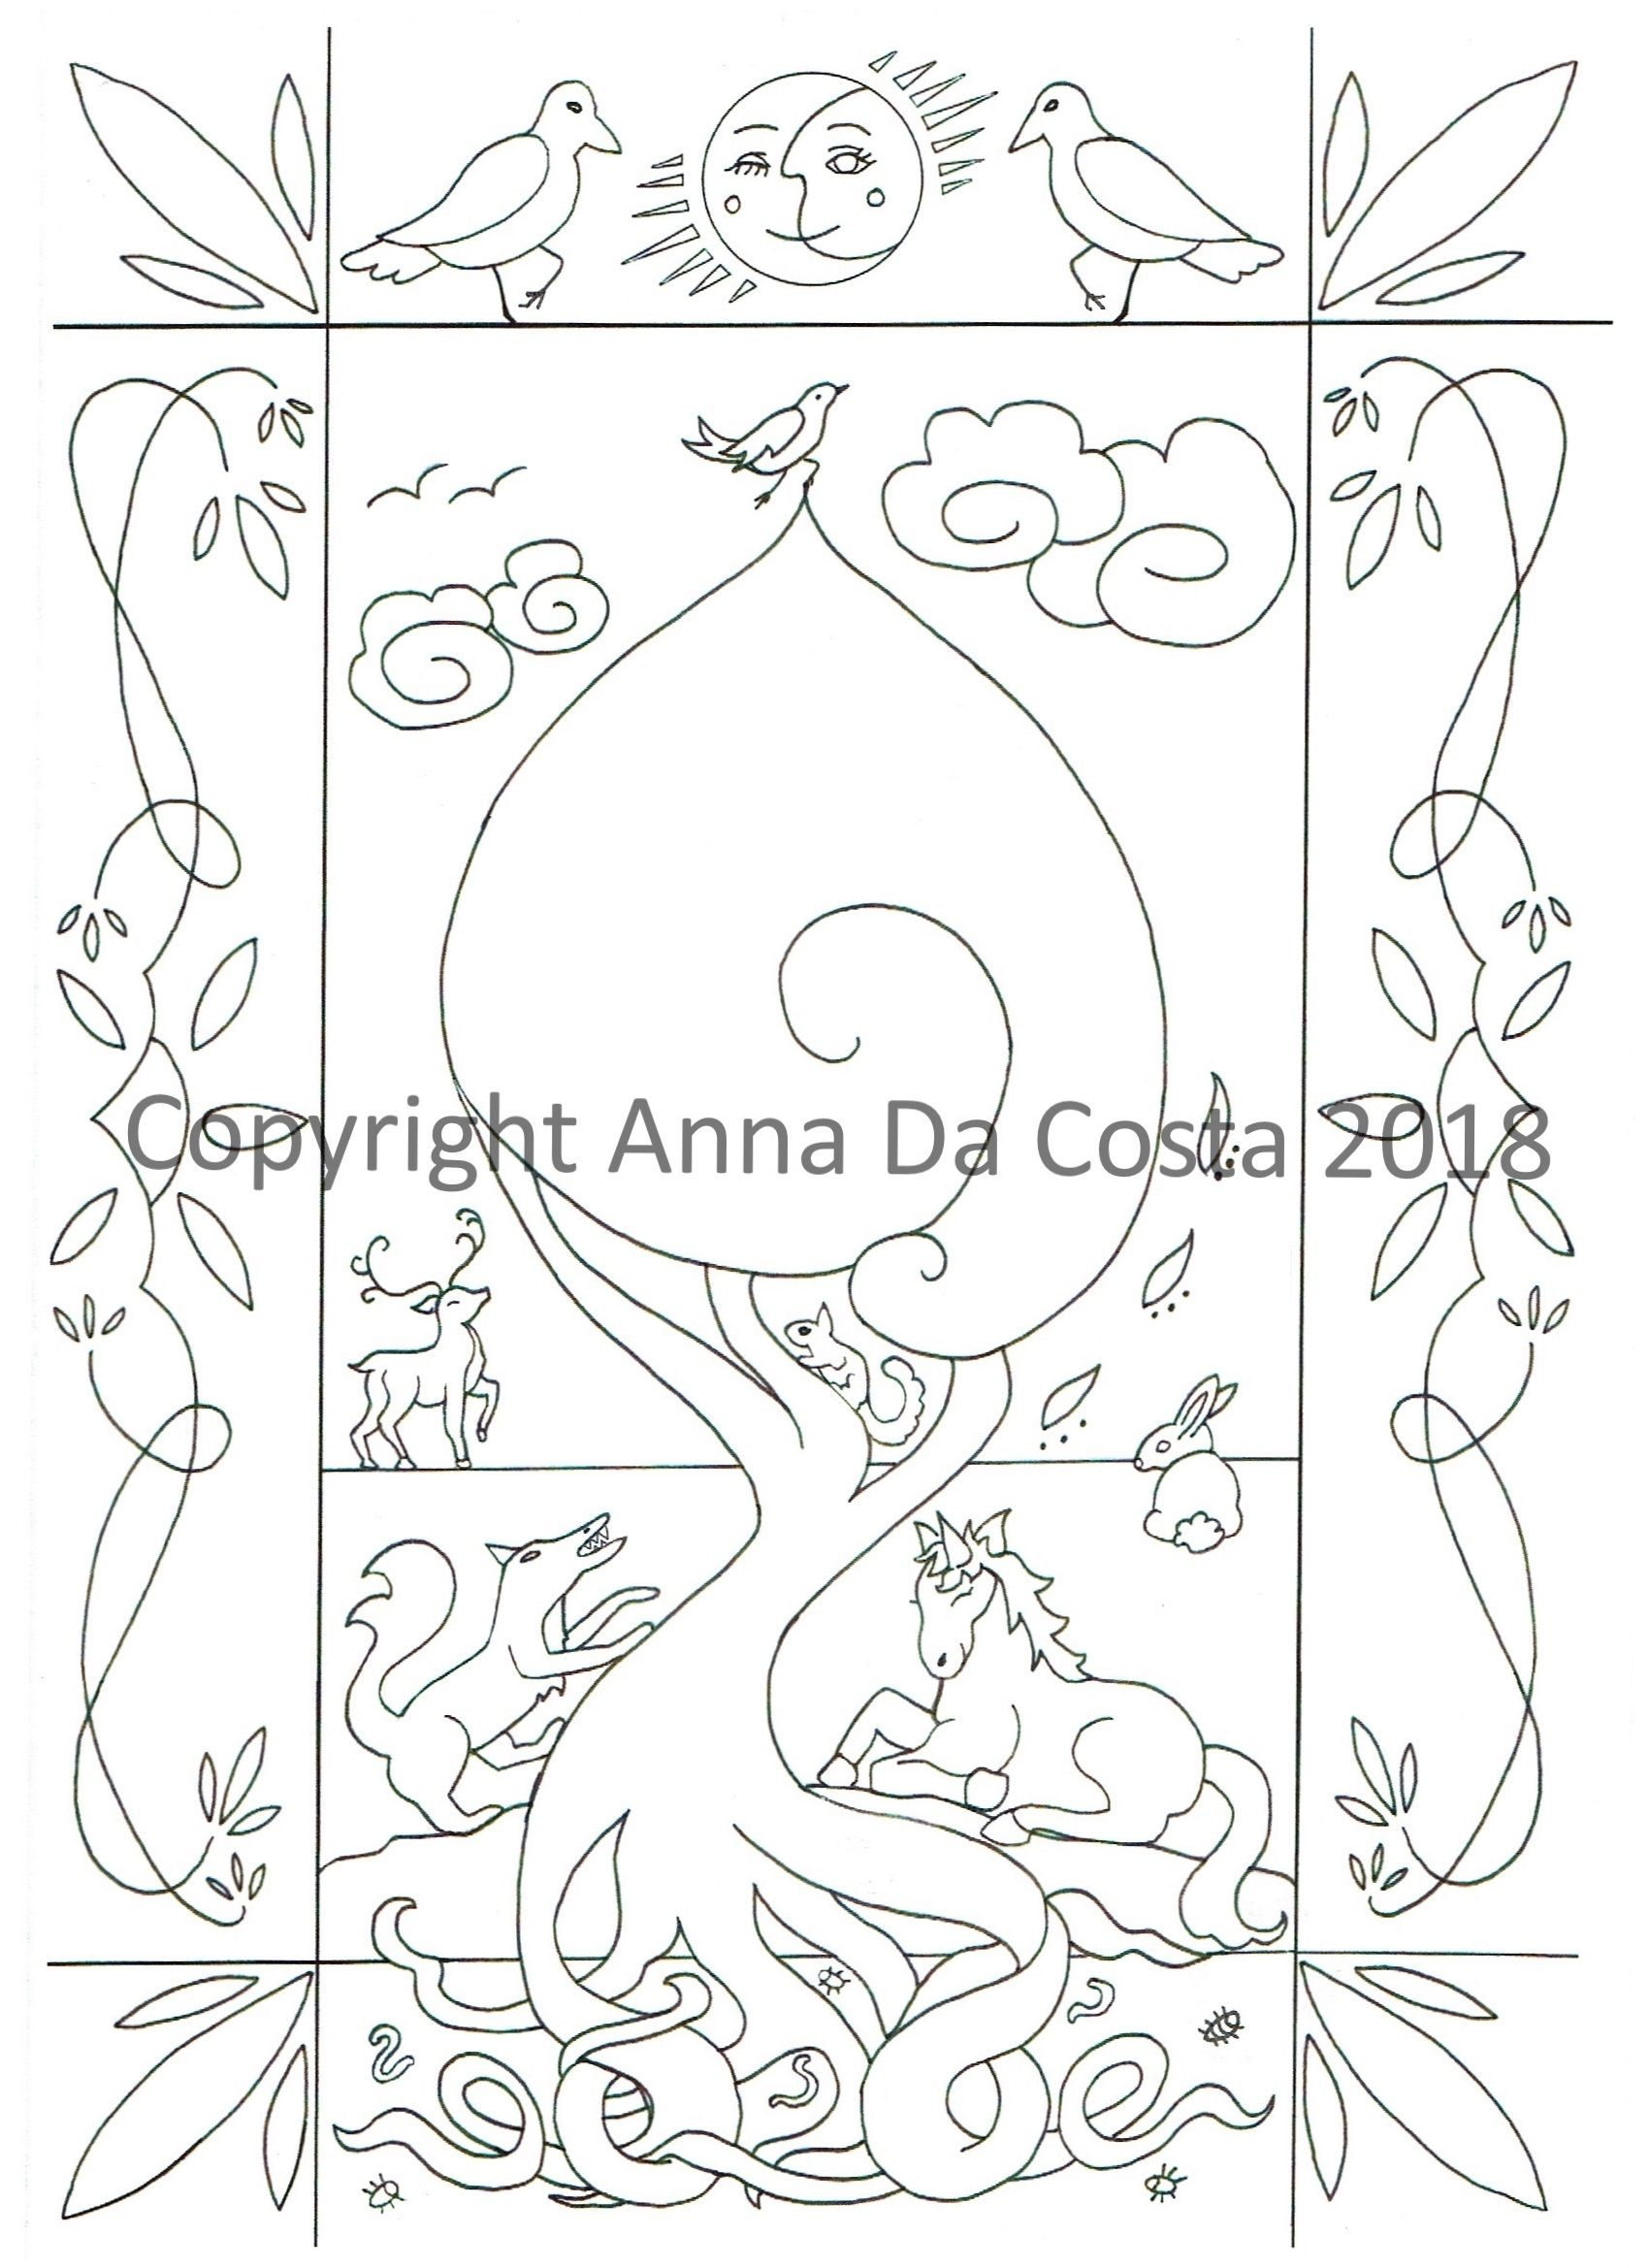 Fairies and nature colouring pack my colouring pages at